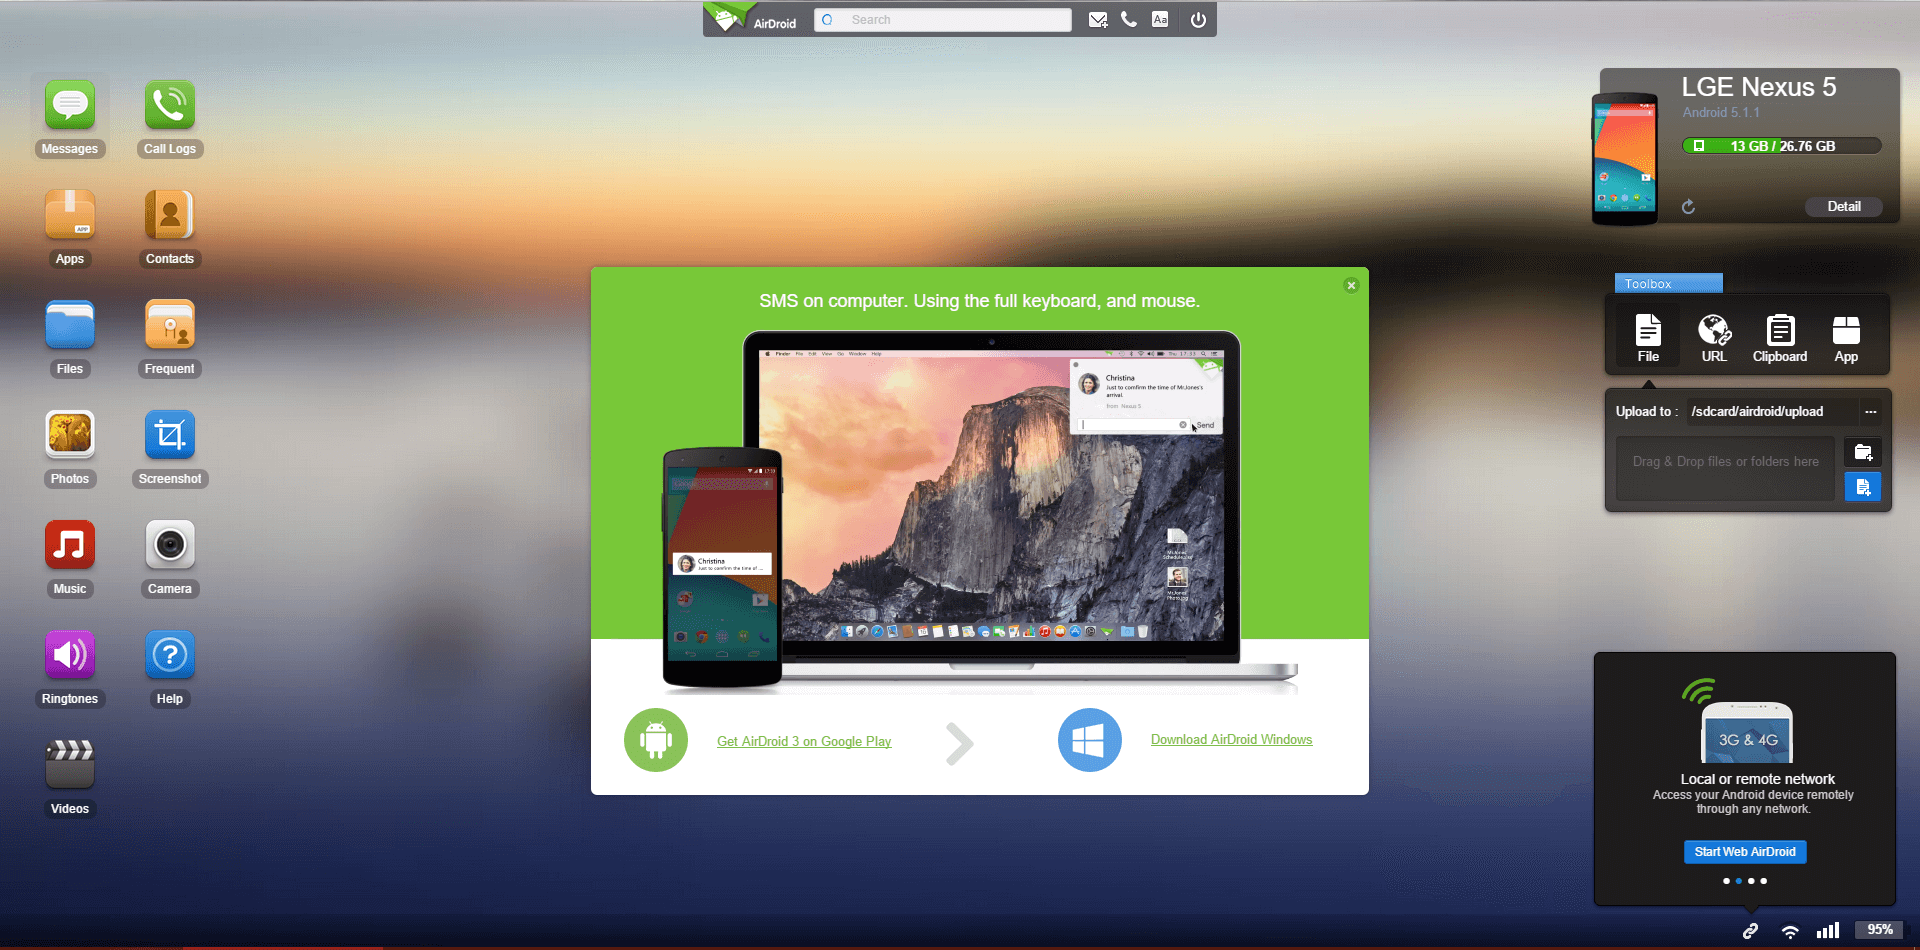 AirDroid: A Complete Step-by-Step Guide